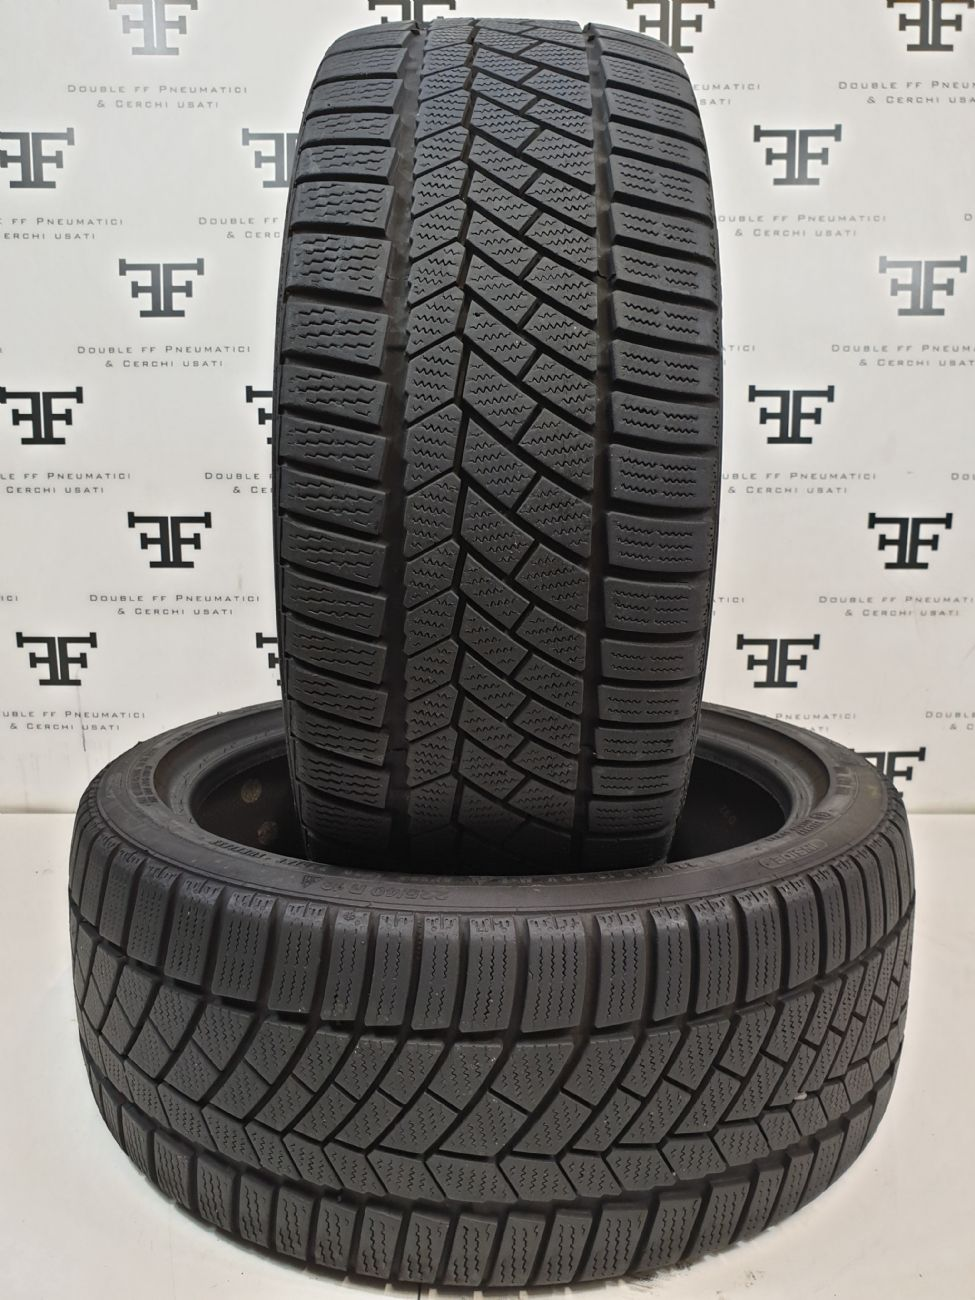 Pneumatici 225 40 R18 92 V CONTINENTAL CONTIWINTERCONTACT TS830P invernale RUNFLAT usati 150€